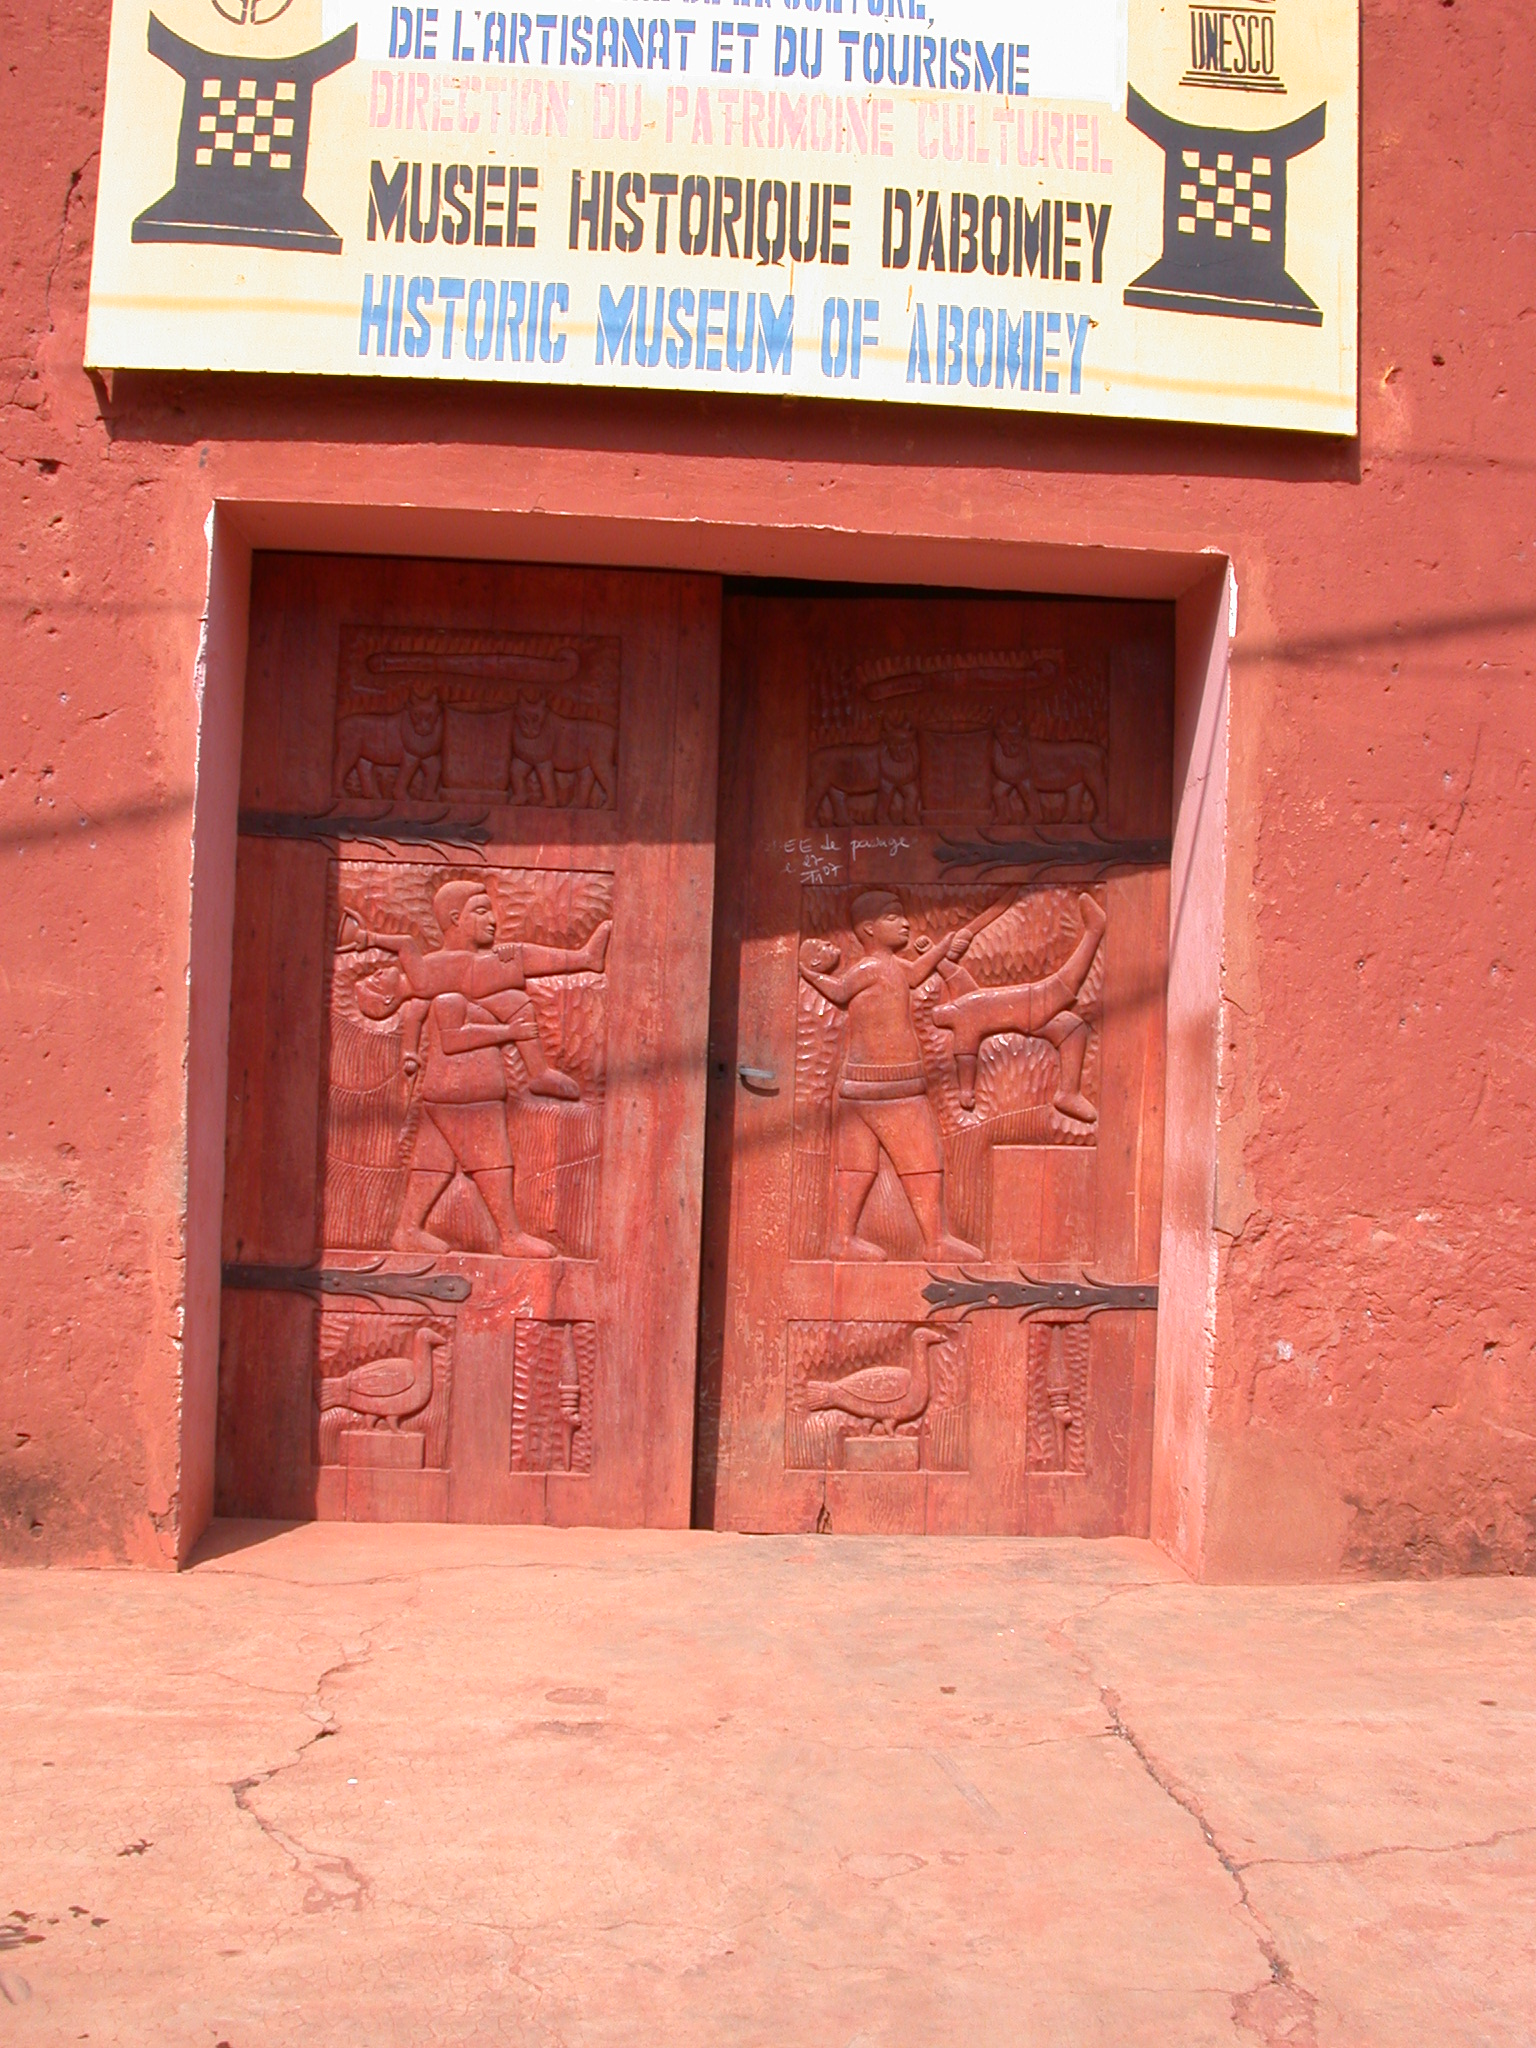 Carved Wooden Palace Doors, Abomey History Museum, Abomey, Benin